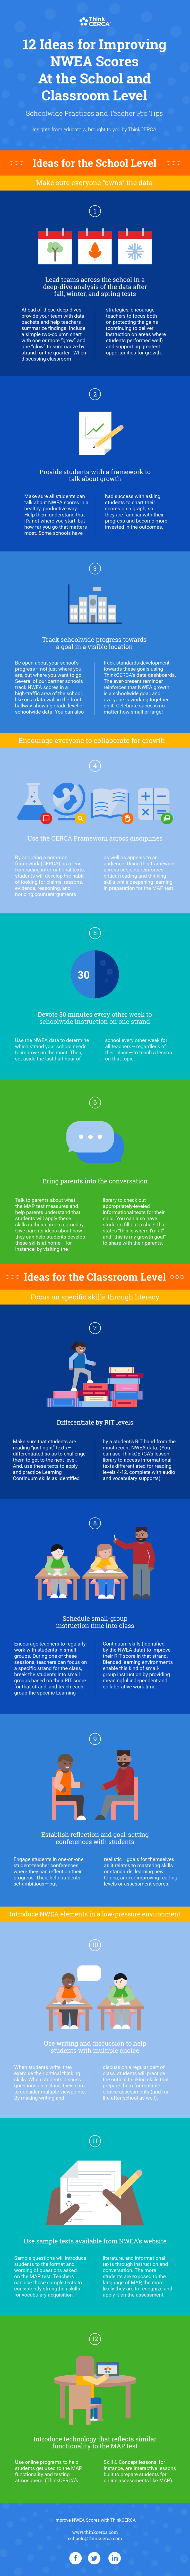 12-Ideas-for-Improving-NWEA-Scores-at-the-School-and-Classroom-Level-ThinkCERCA.png